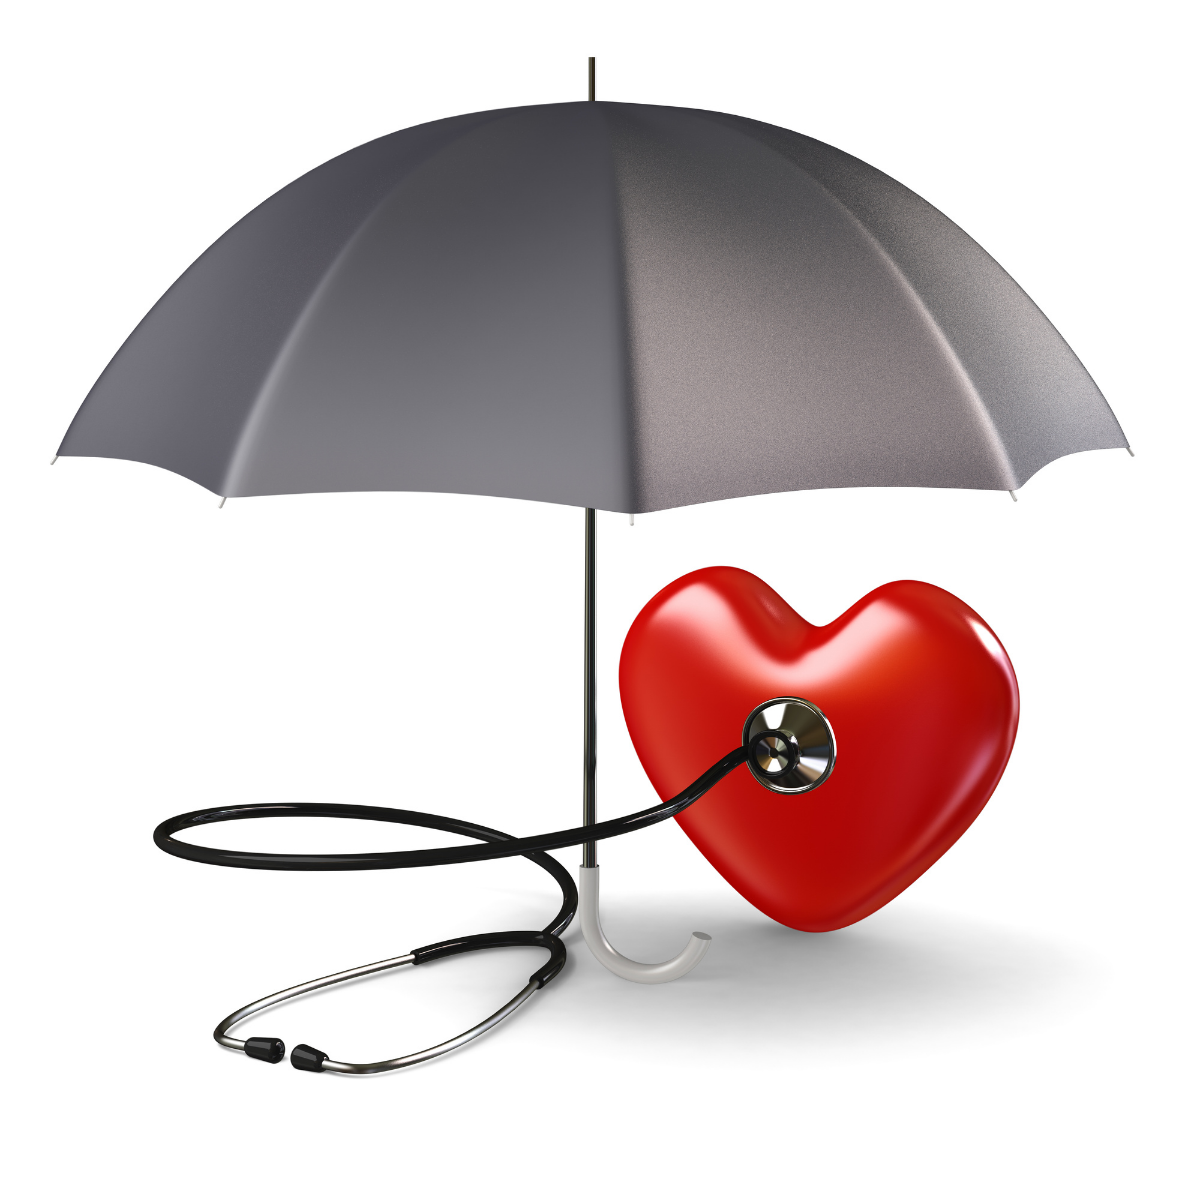 What Happens When You Miss A Life Insurance Payment?